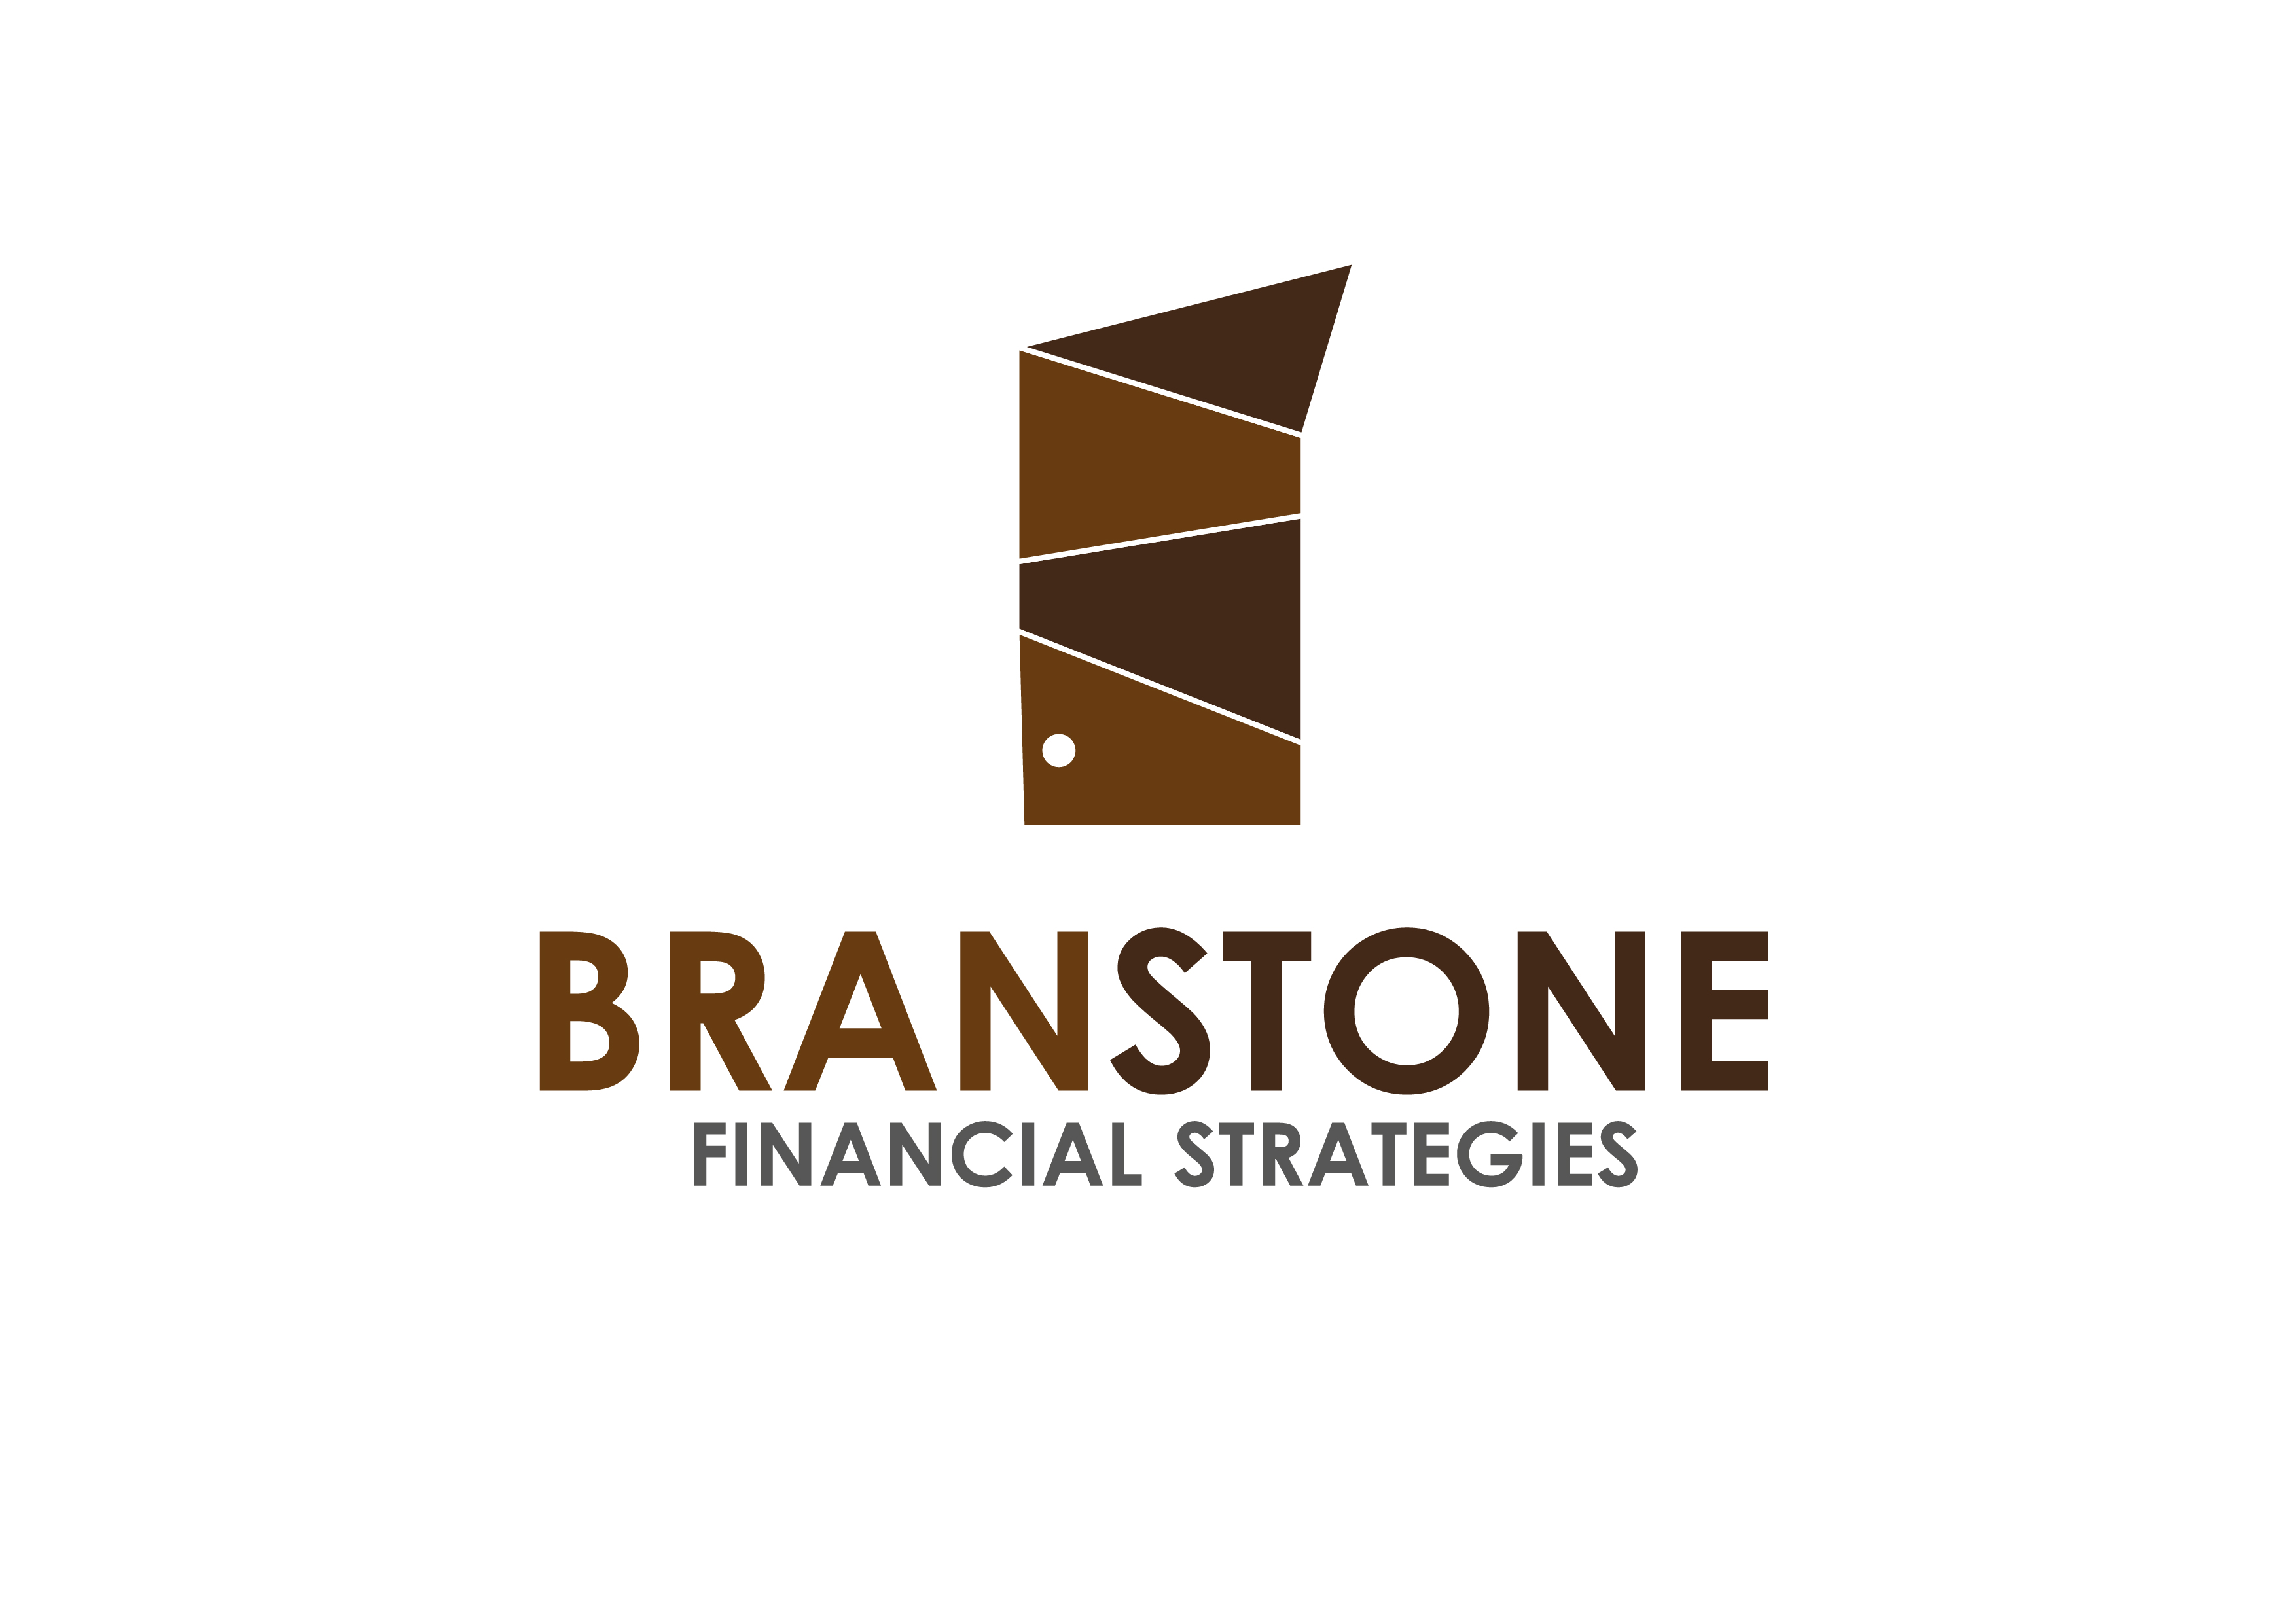 Logo Design by 3draw - Entry No. 39 in the Logo Design Contest Inspiring Logo Design for Branstone Financial Strategies.